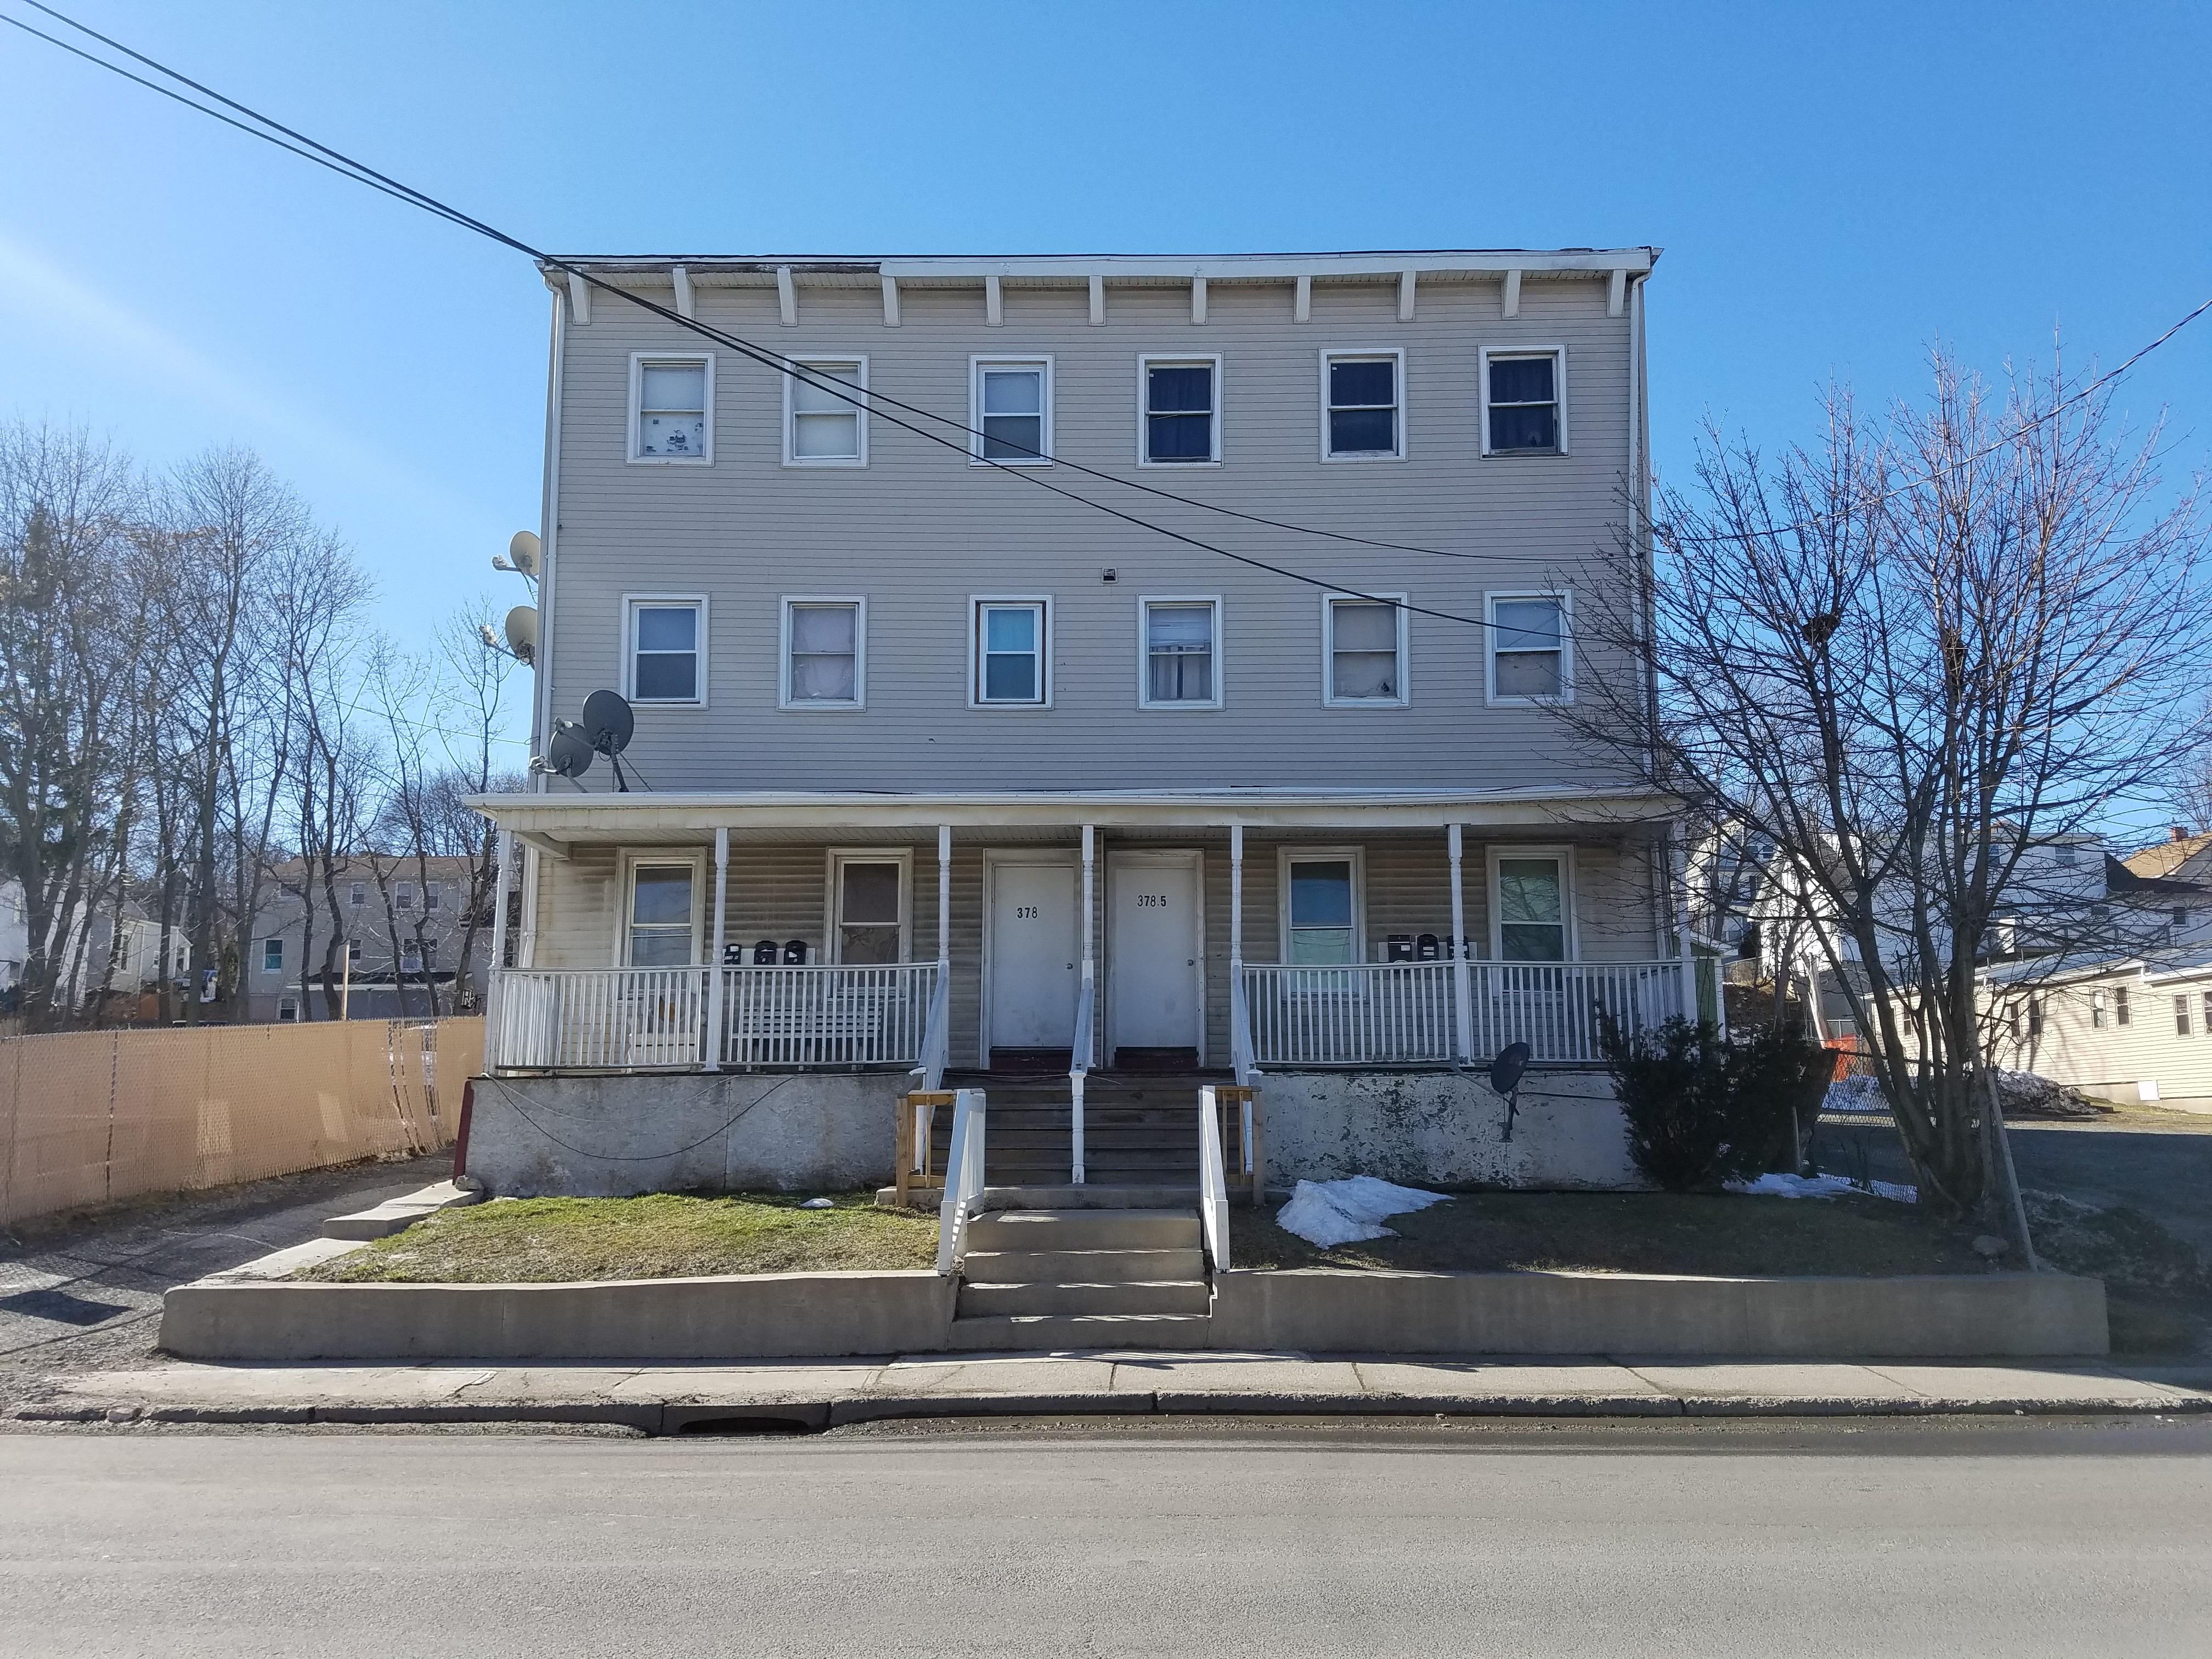 3 Bedroom Apt In Middletown Colonial Property Management